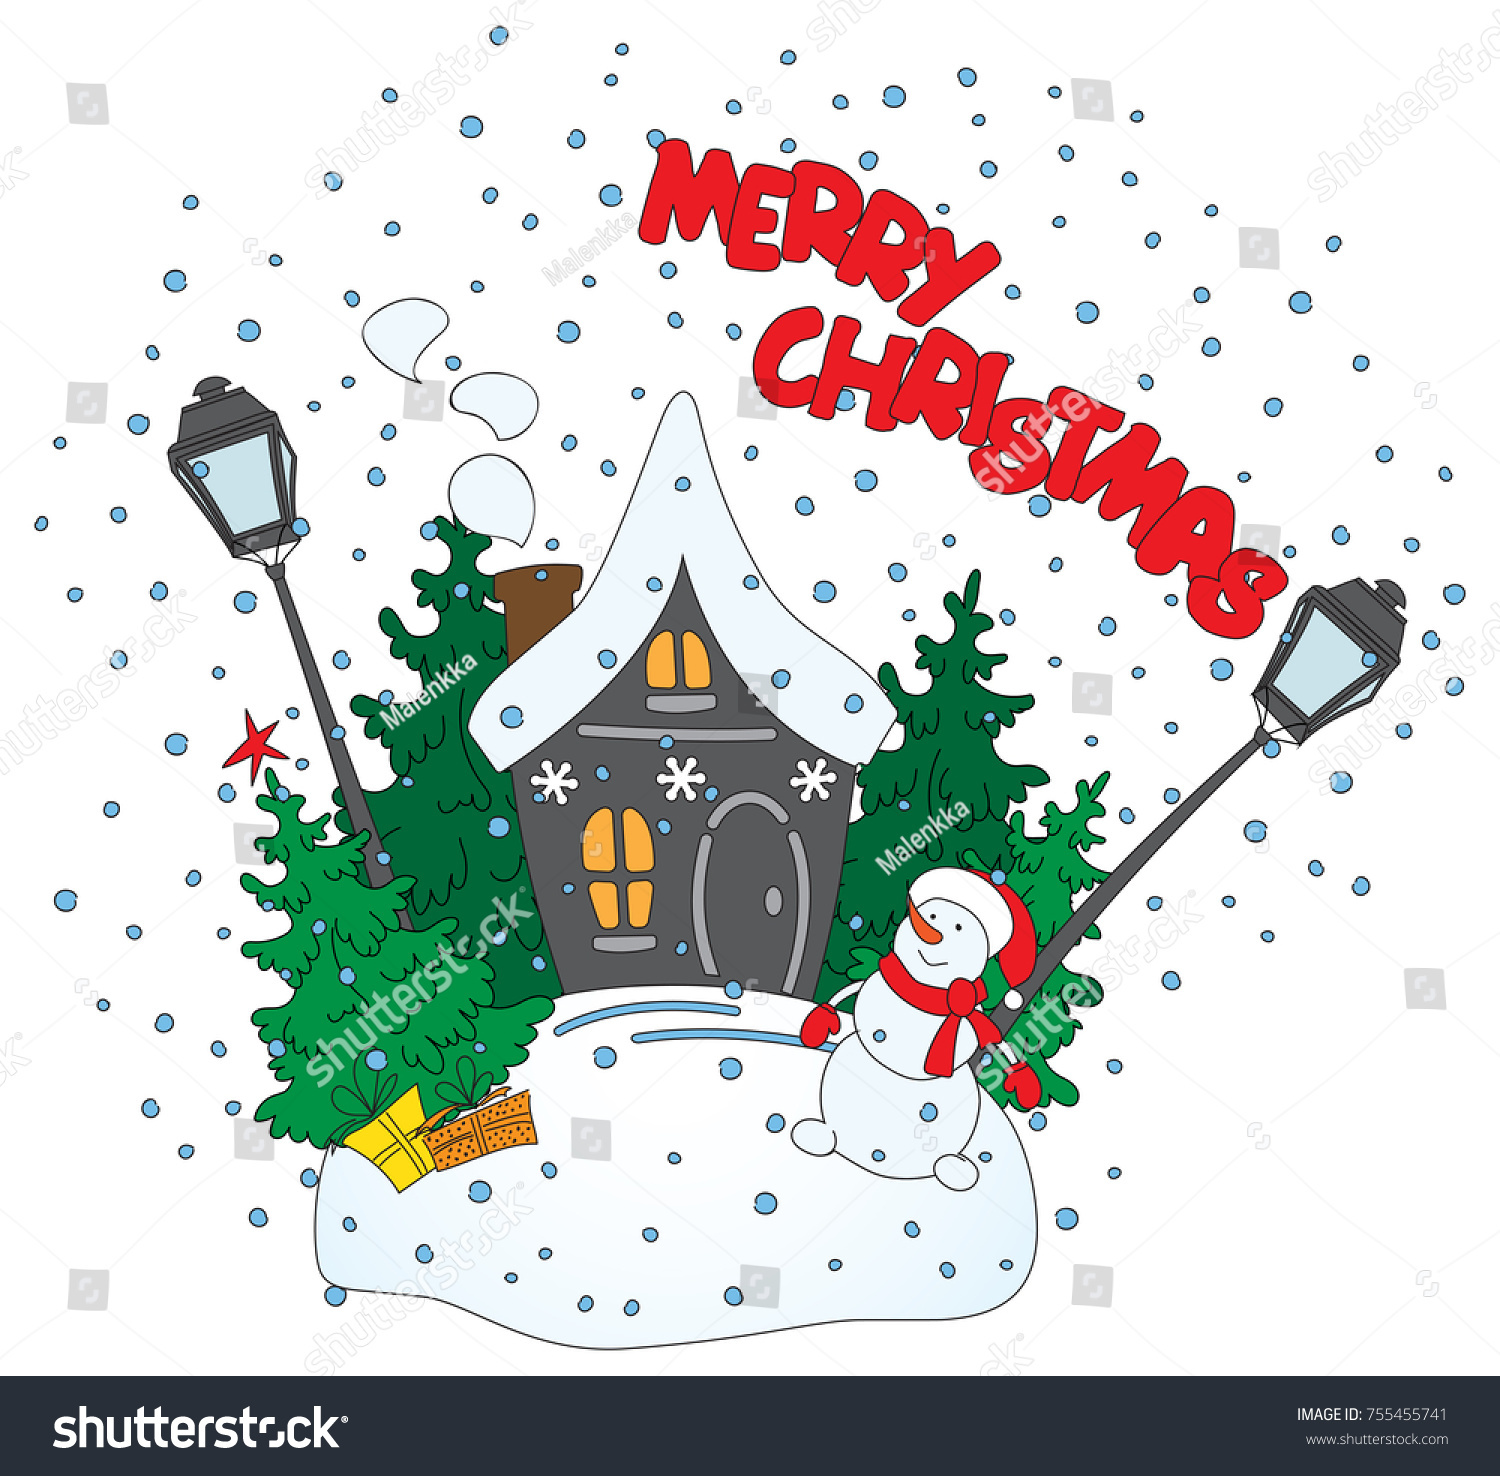 The Funny Christmas Drawing Snowman Staying Near Small House